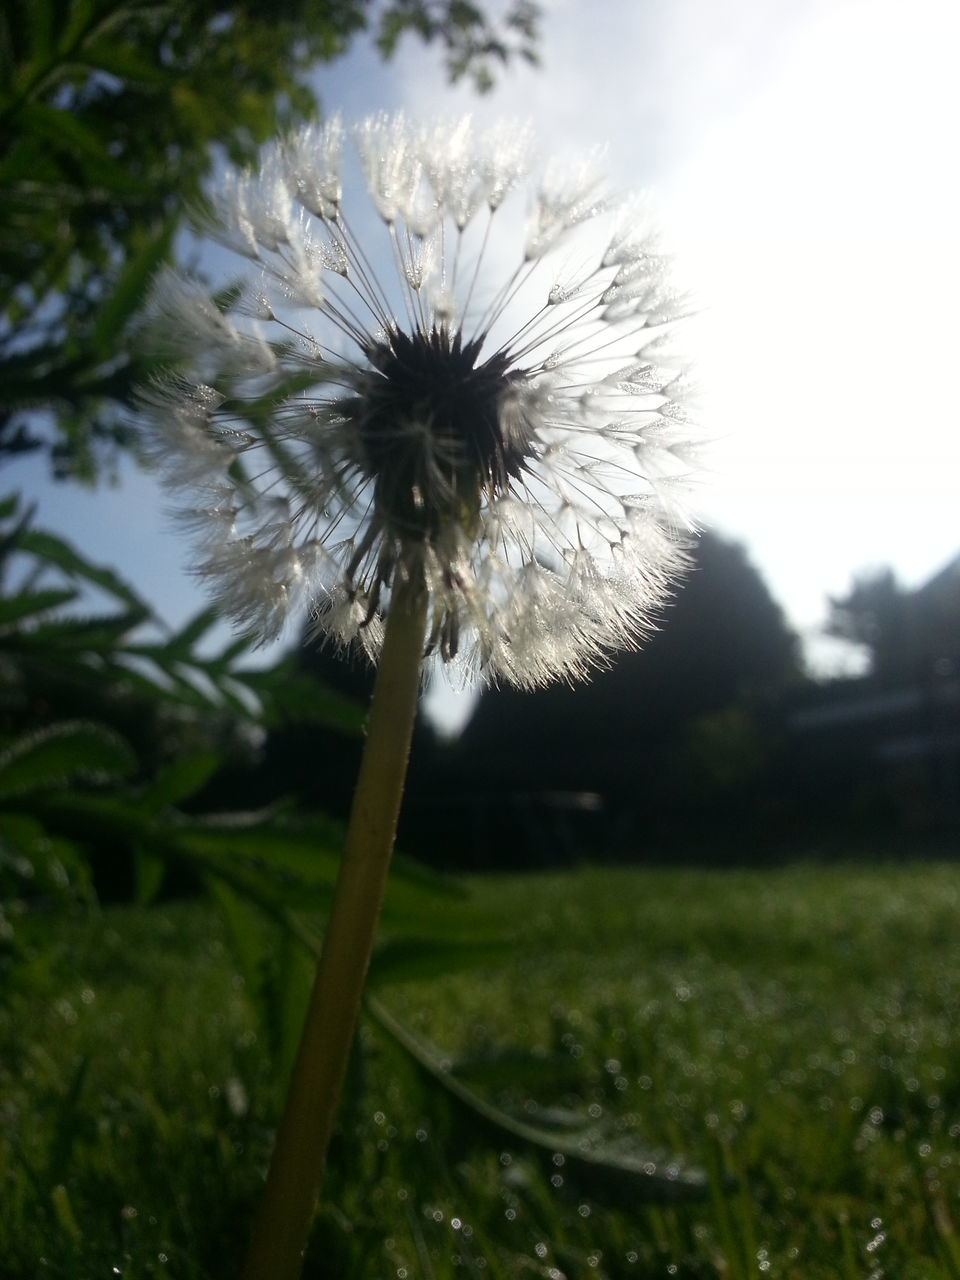 flower, fragility, nature, growth, dandelion, beauty in nature, freshness, flower head, botany, plant, softness, petal, outdoors, close-up, no people, day, springtime, grass, water